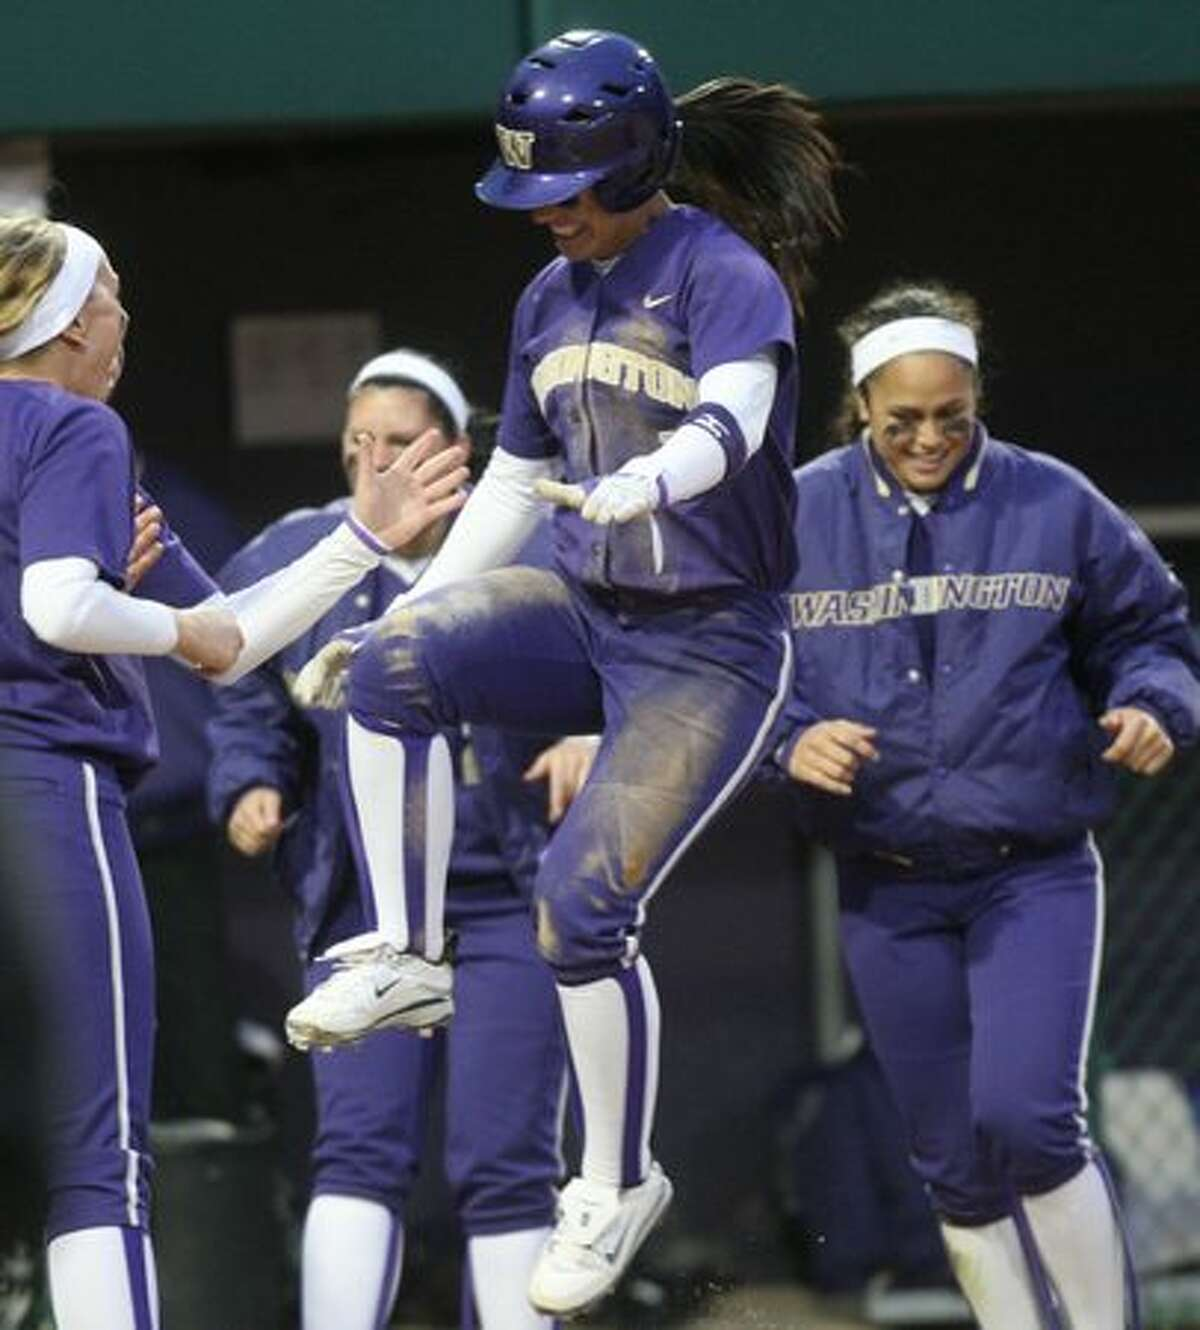 University of Washington player Jenn Salling leaps onto home plate after being driven home by a Shawna Wright home run against the University of Oklahoma during Game 2 of a double-header in the NCAA Super Regionals on Friday, May 28, 2010 at Husky Stadium.